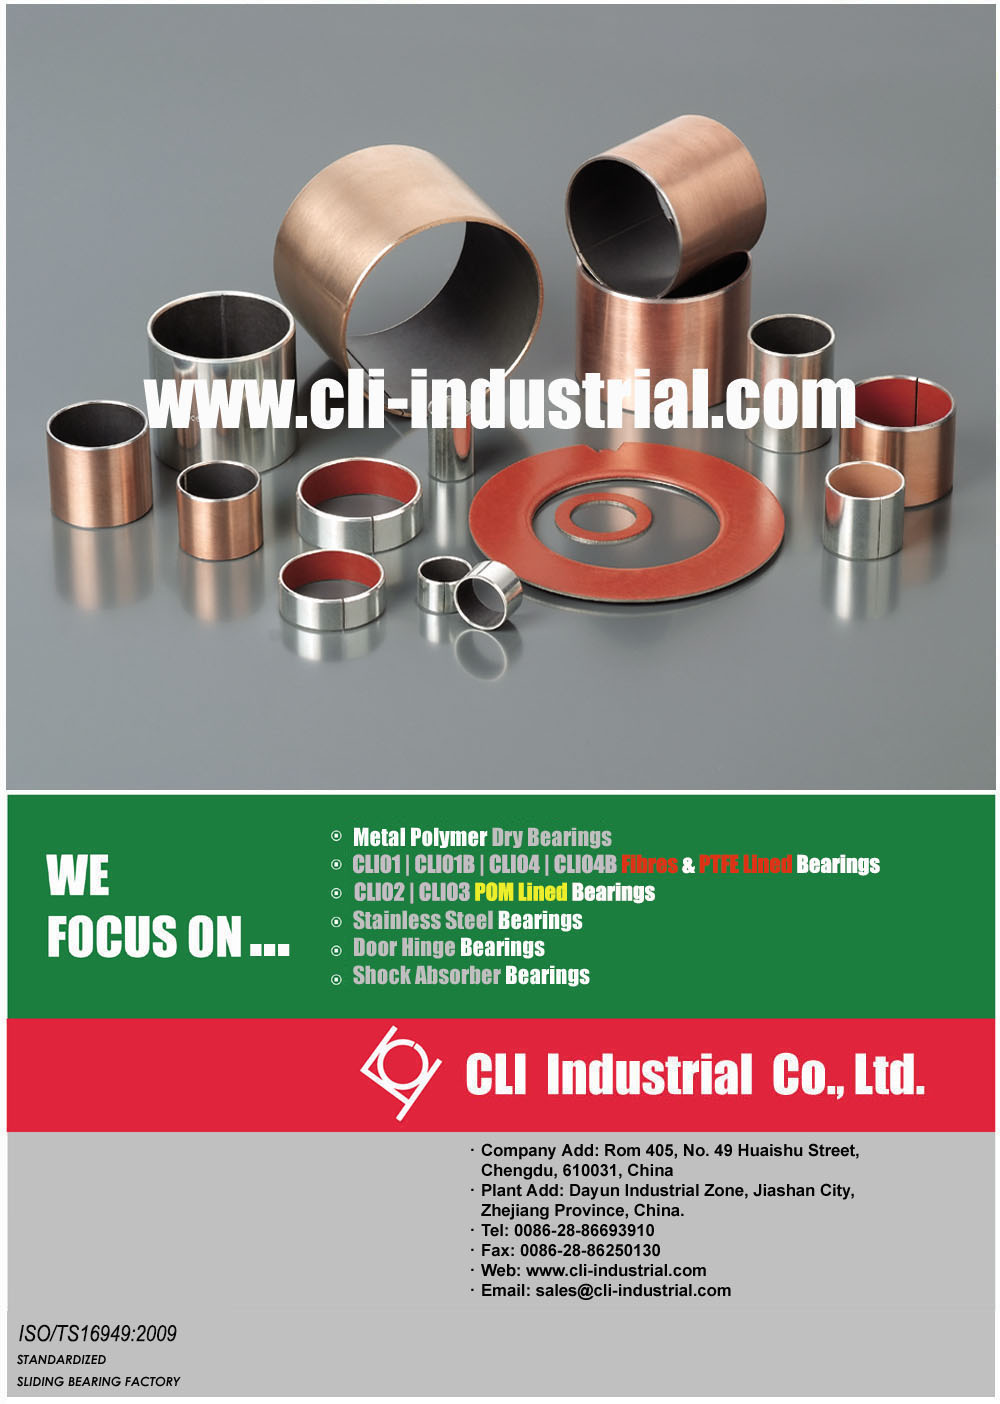 Metal Polymer Dry Bearings